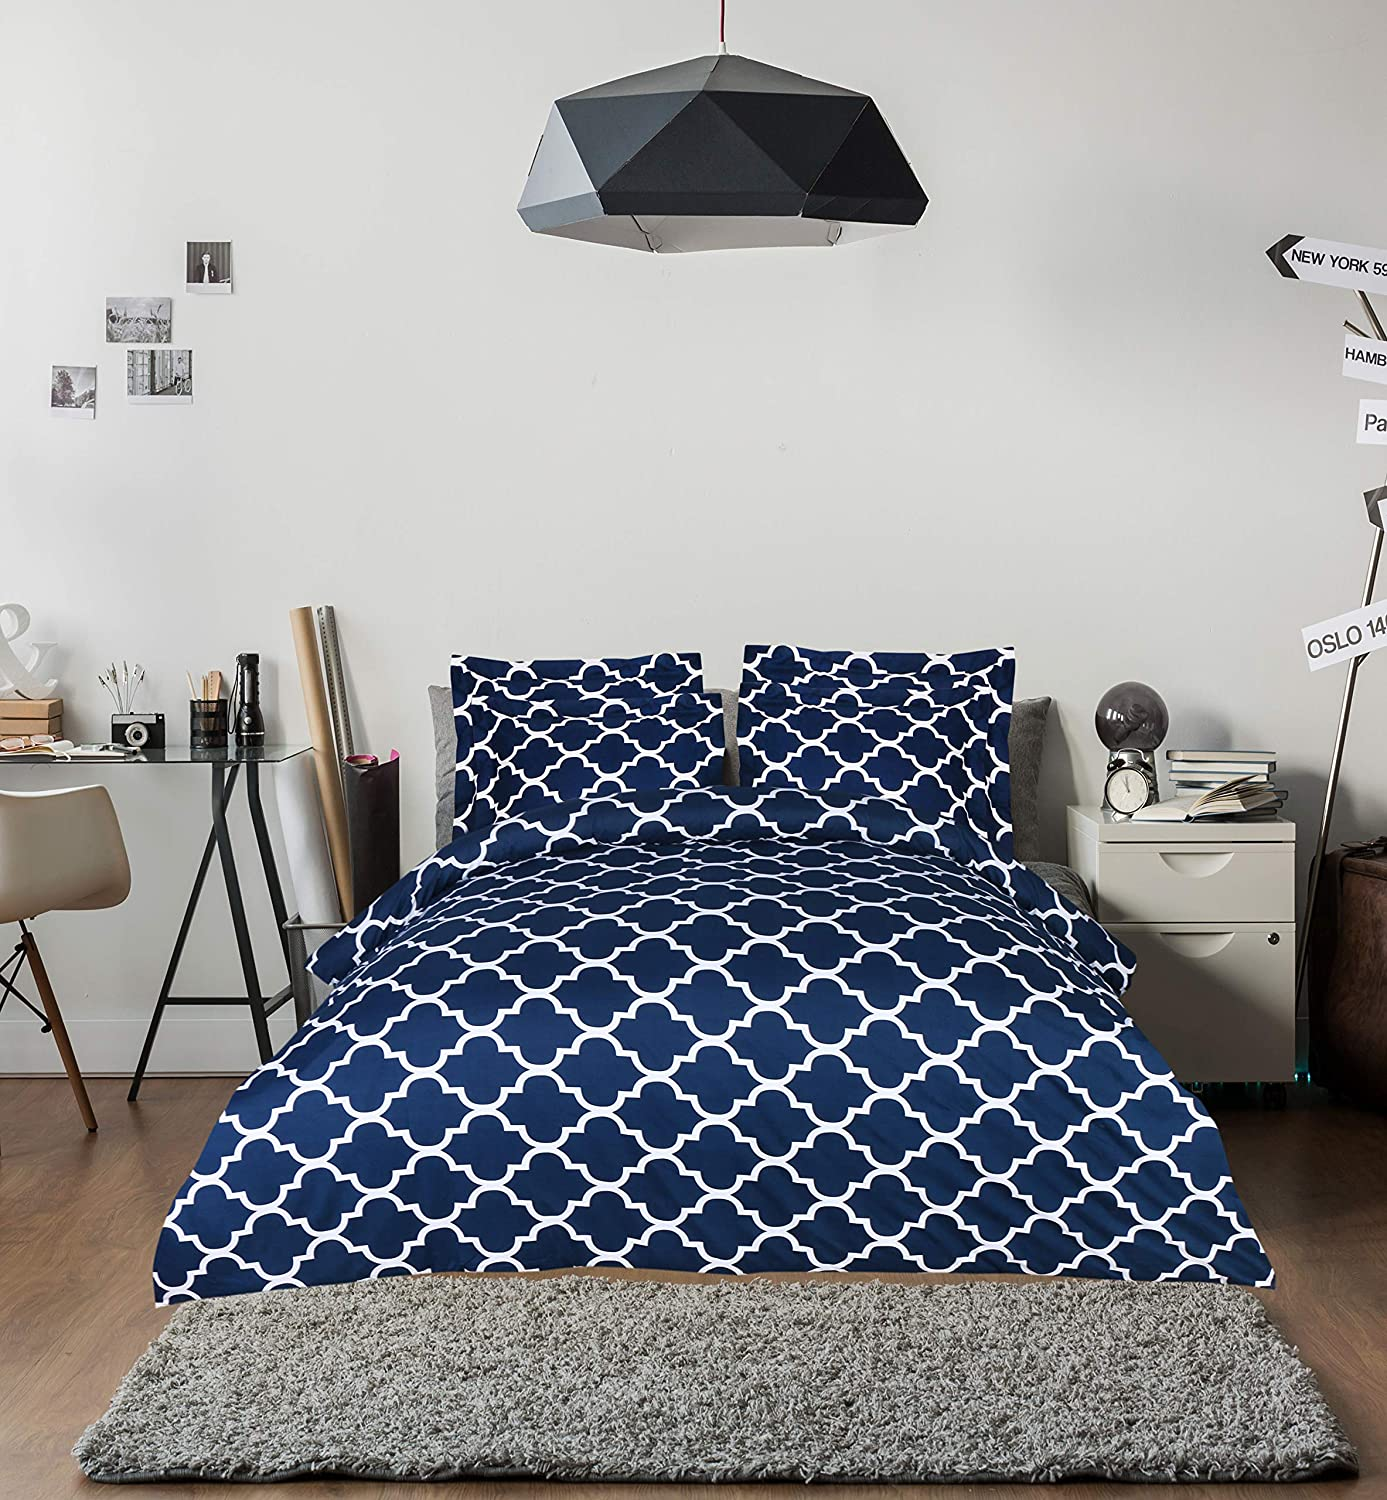 Utopia Bedding 3pc Microfiber Duvet Cover Set (Queen, Printed Navy